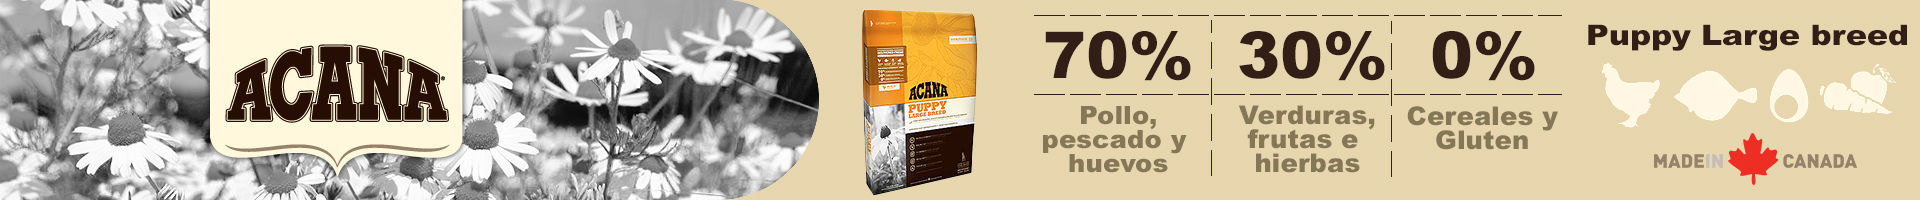 Acana puppy large breed, 70% aves, pescados y sin cereal